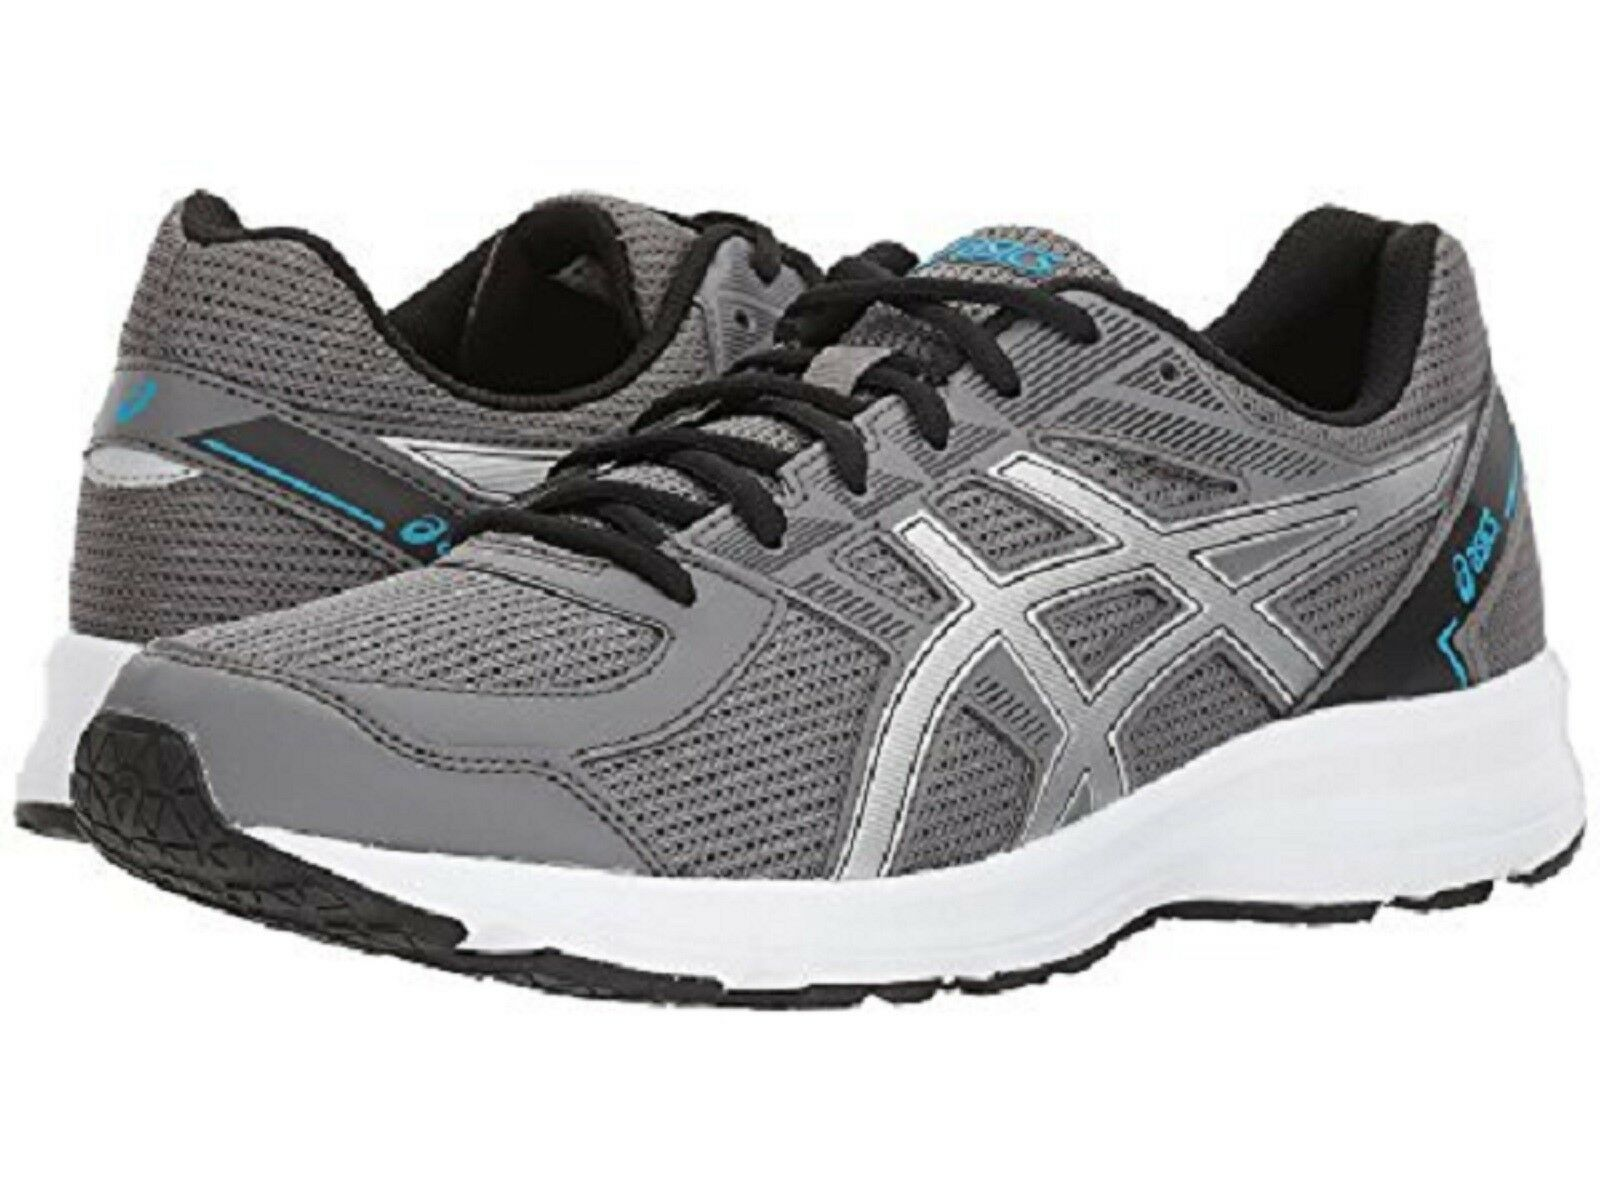 new product ee873 dc95c ASICS Men's 'JOLT' Running shoes CARBON SILVER blueE BLK WHTE Sz. 11.5 MED